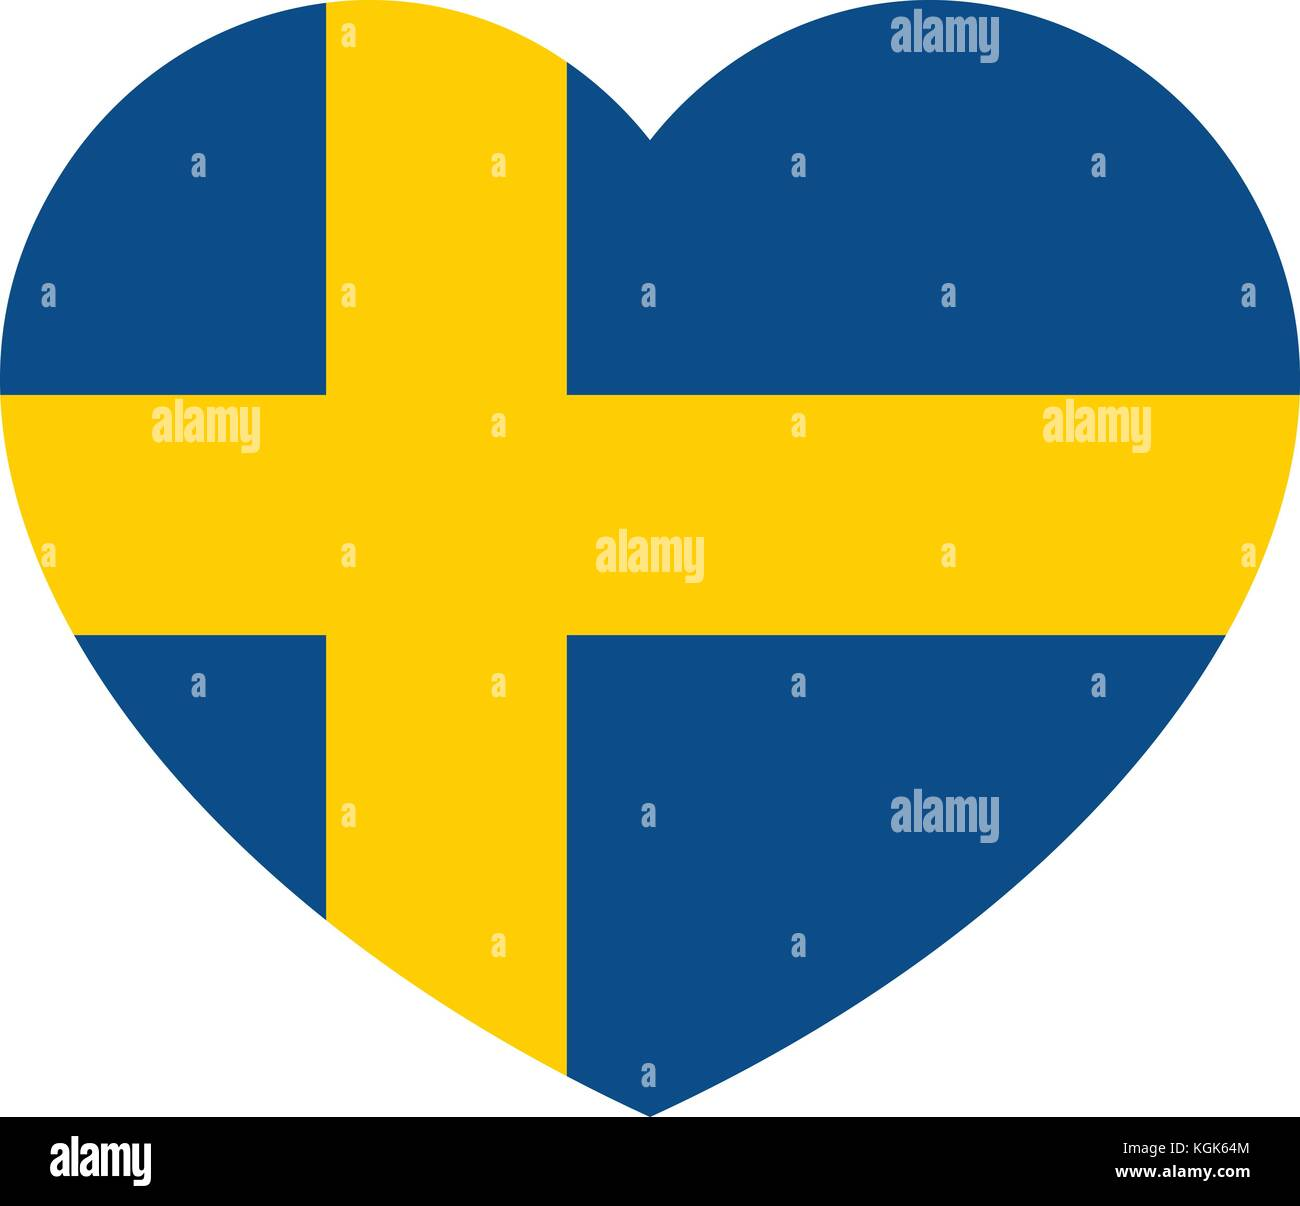 schweden flagge in das herz die schwedische flagge vector illustration vektor abbildung bild. Black Bedroom Furniture Sets. Home Design Ideas